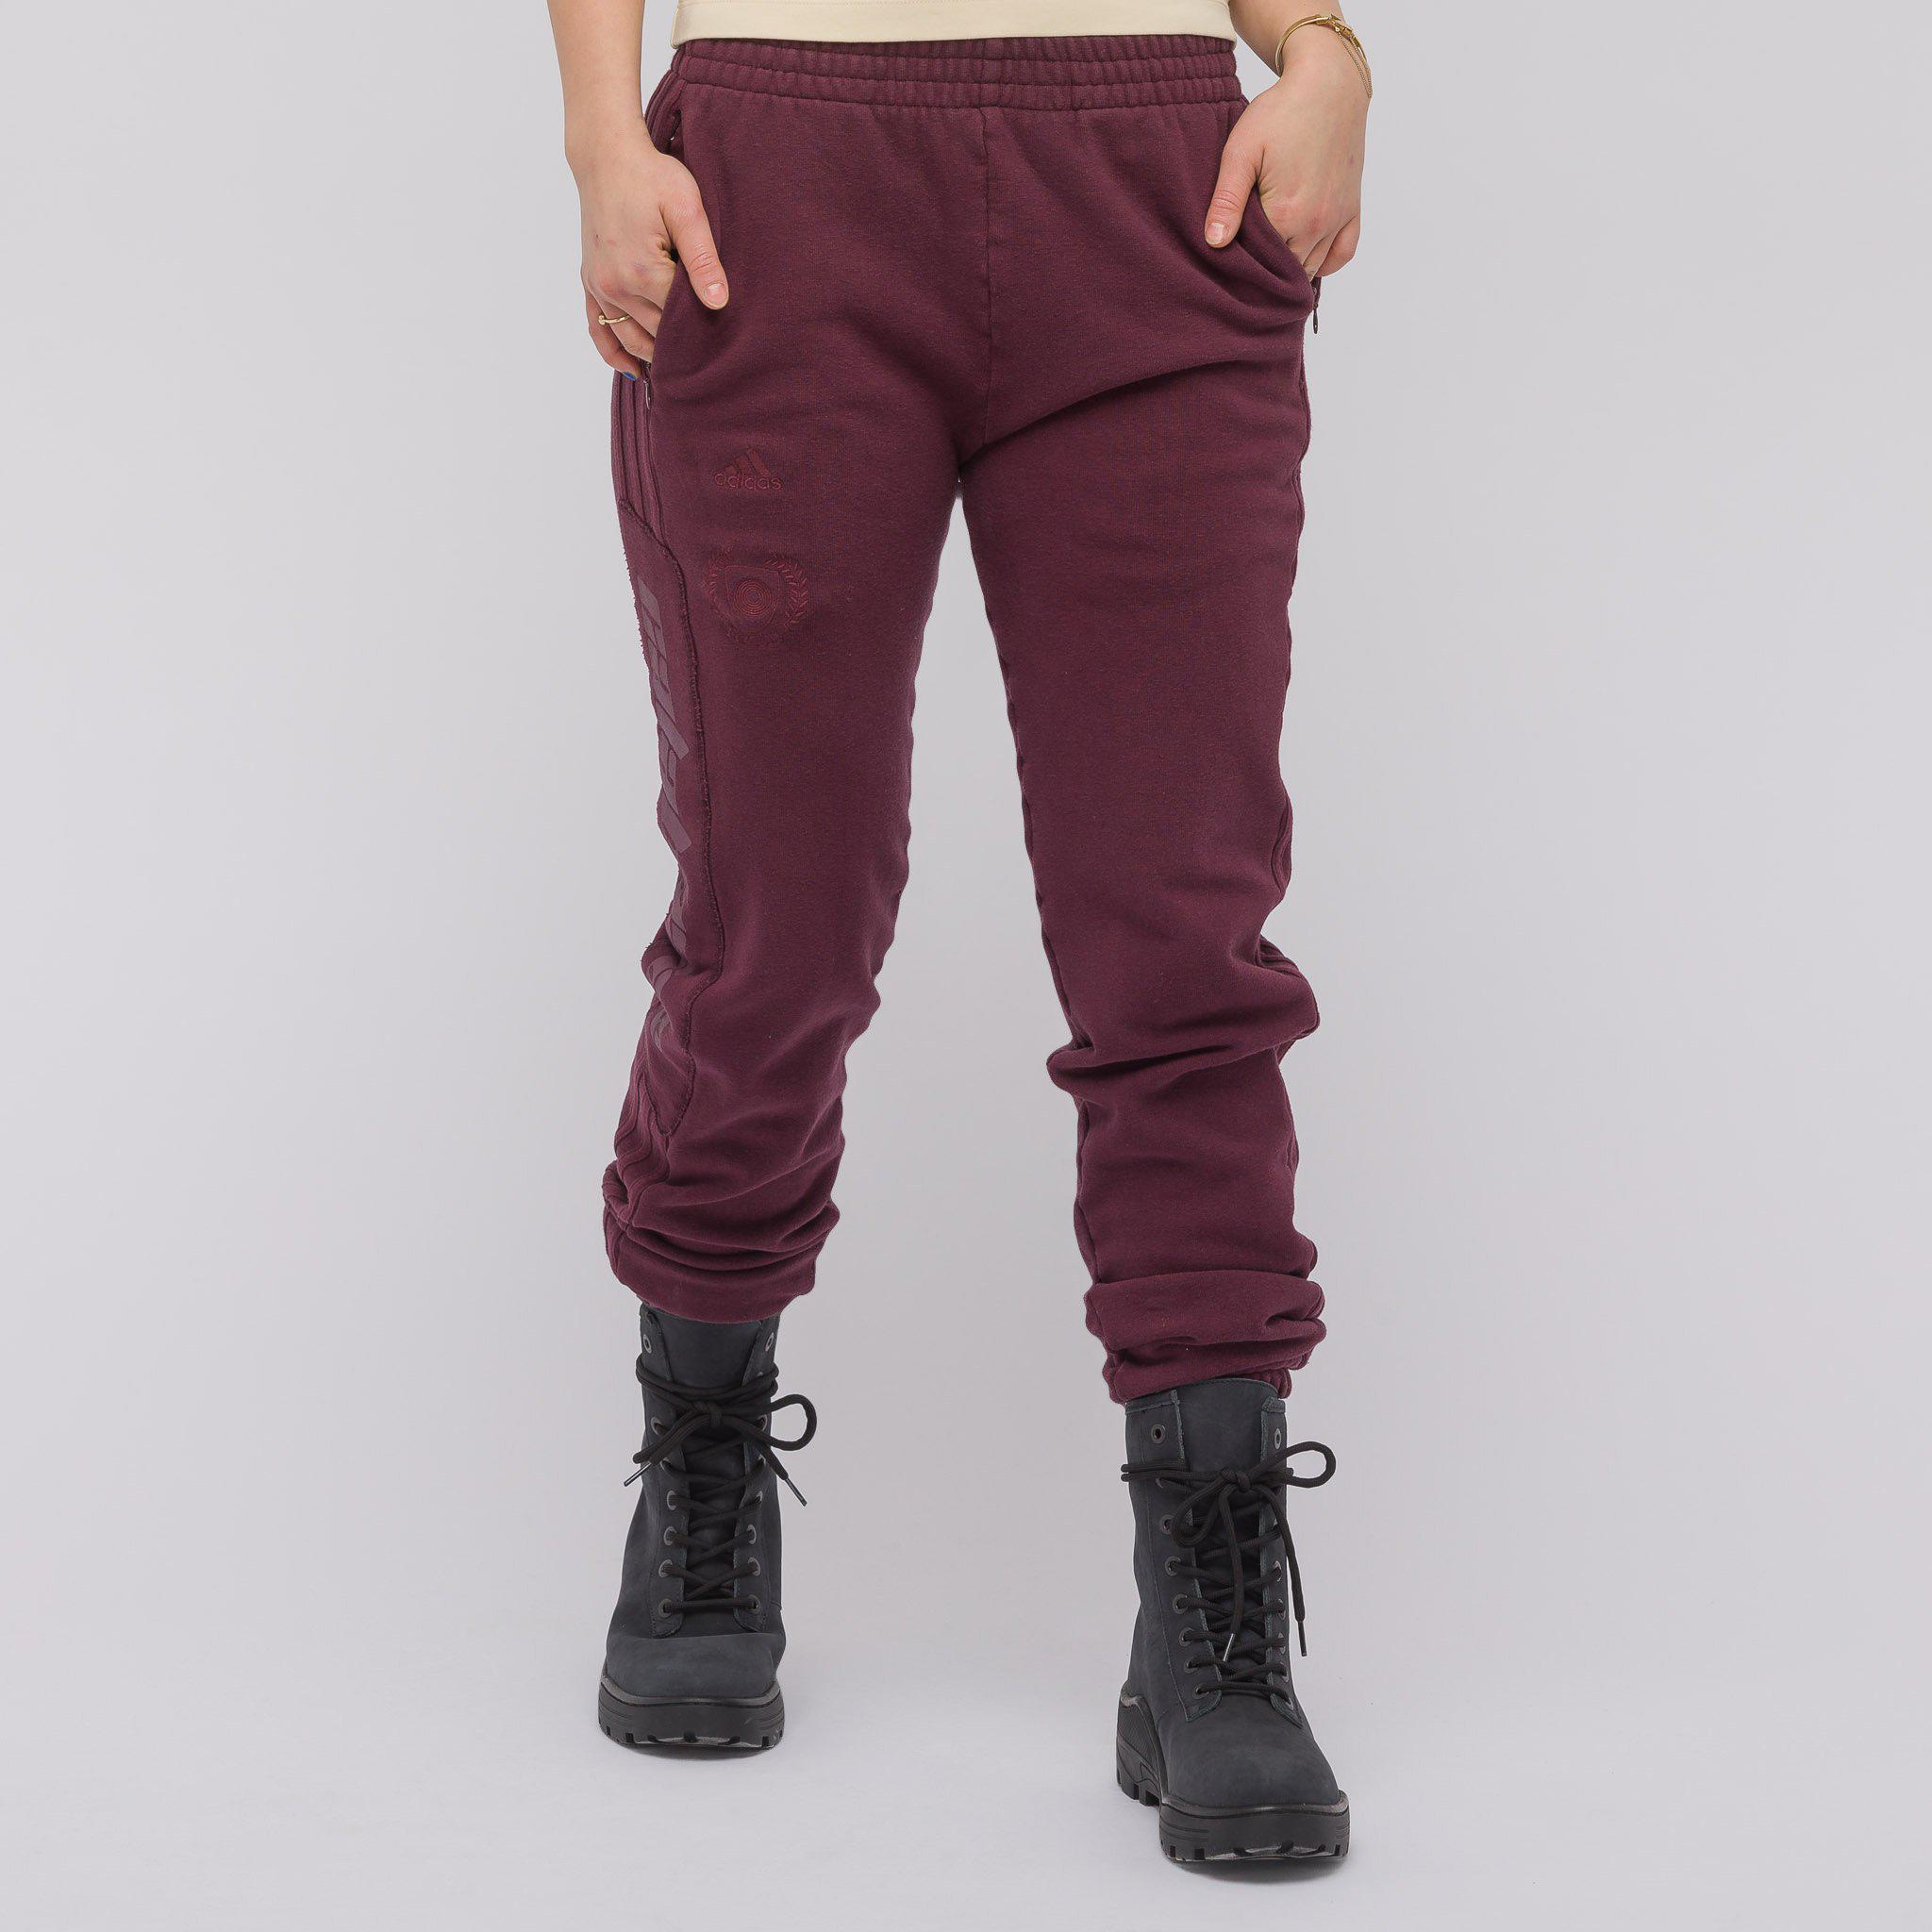 92e31277 Yeezy Women's Calabasas Sweatpants In Oxblood in Purple for Men - Lyst